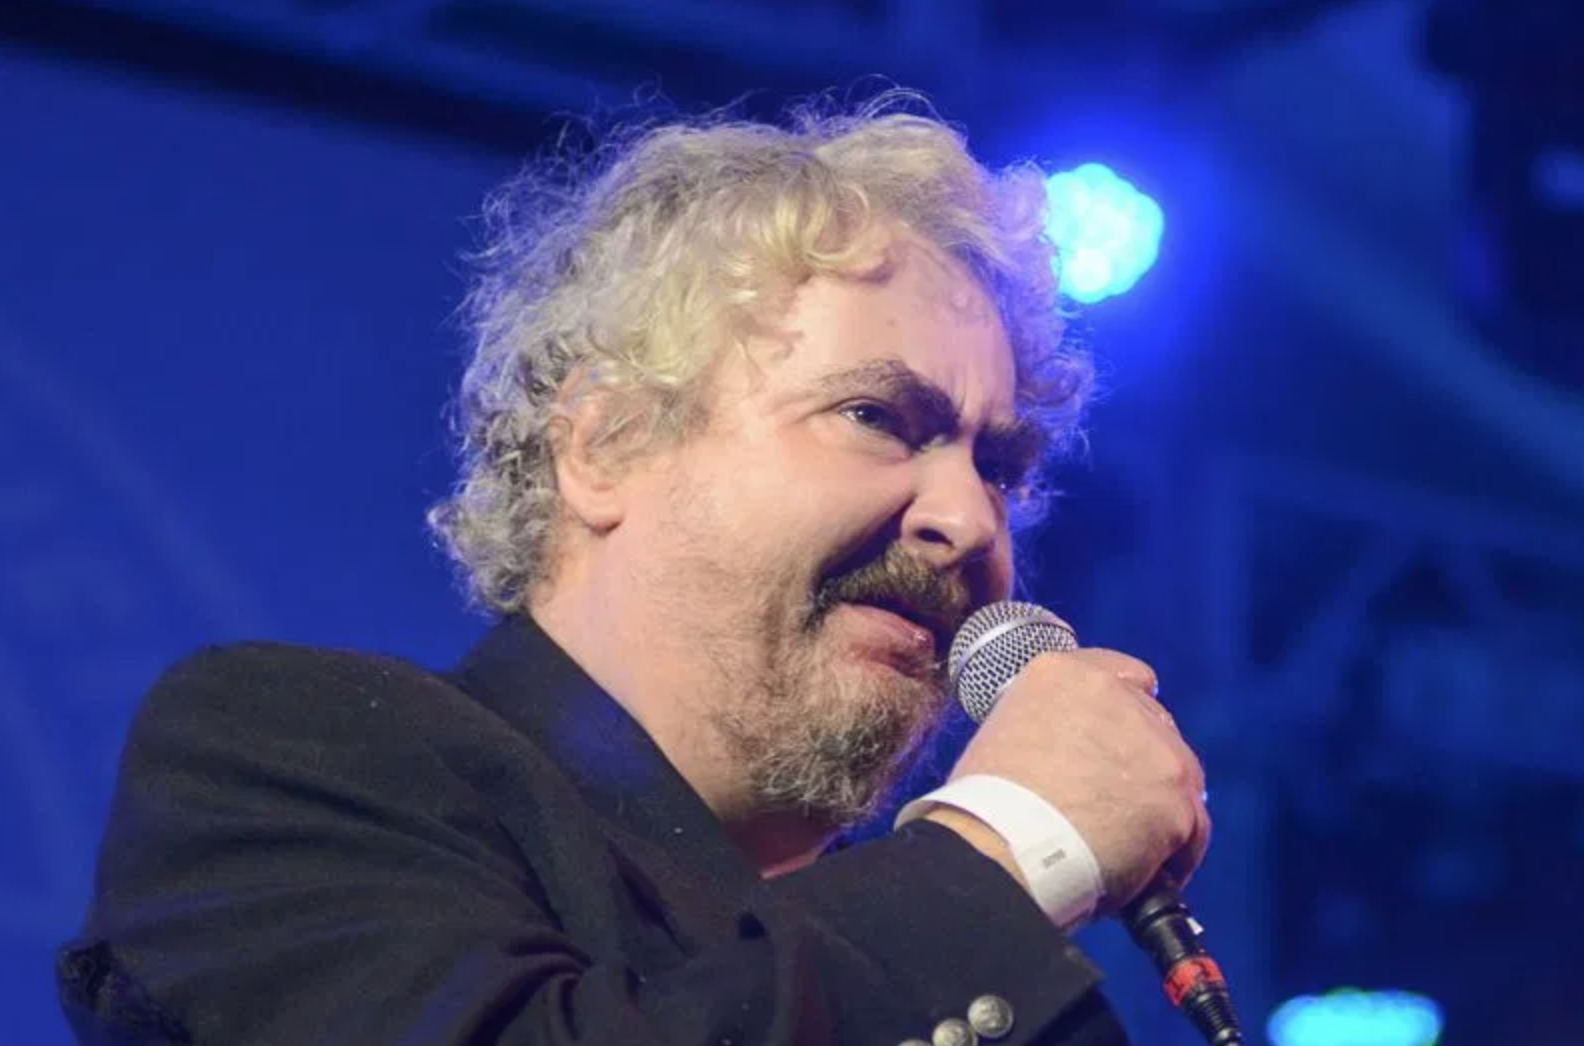 For Daniel Johnston, Art and Therapy Were One and the Same